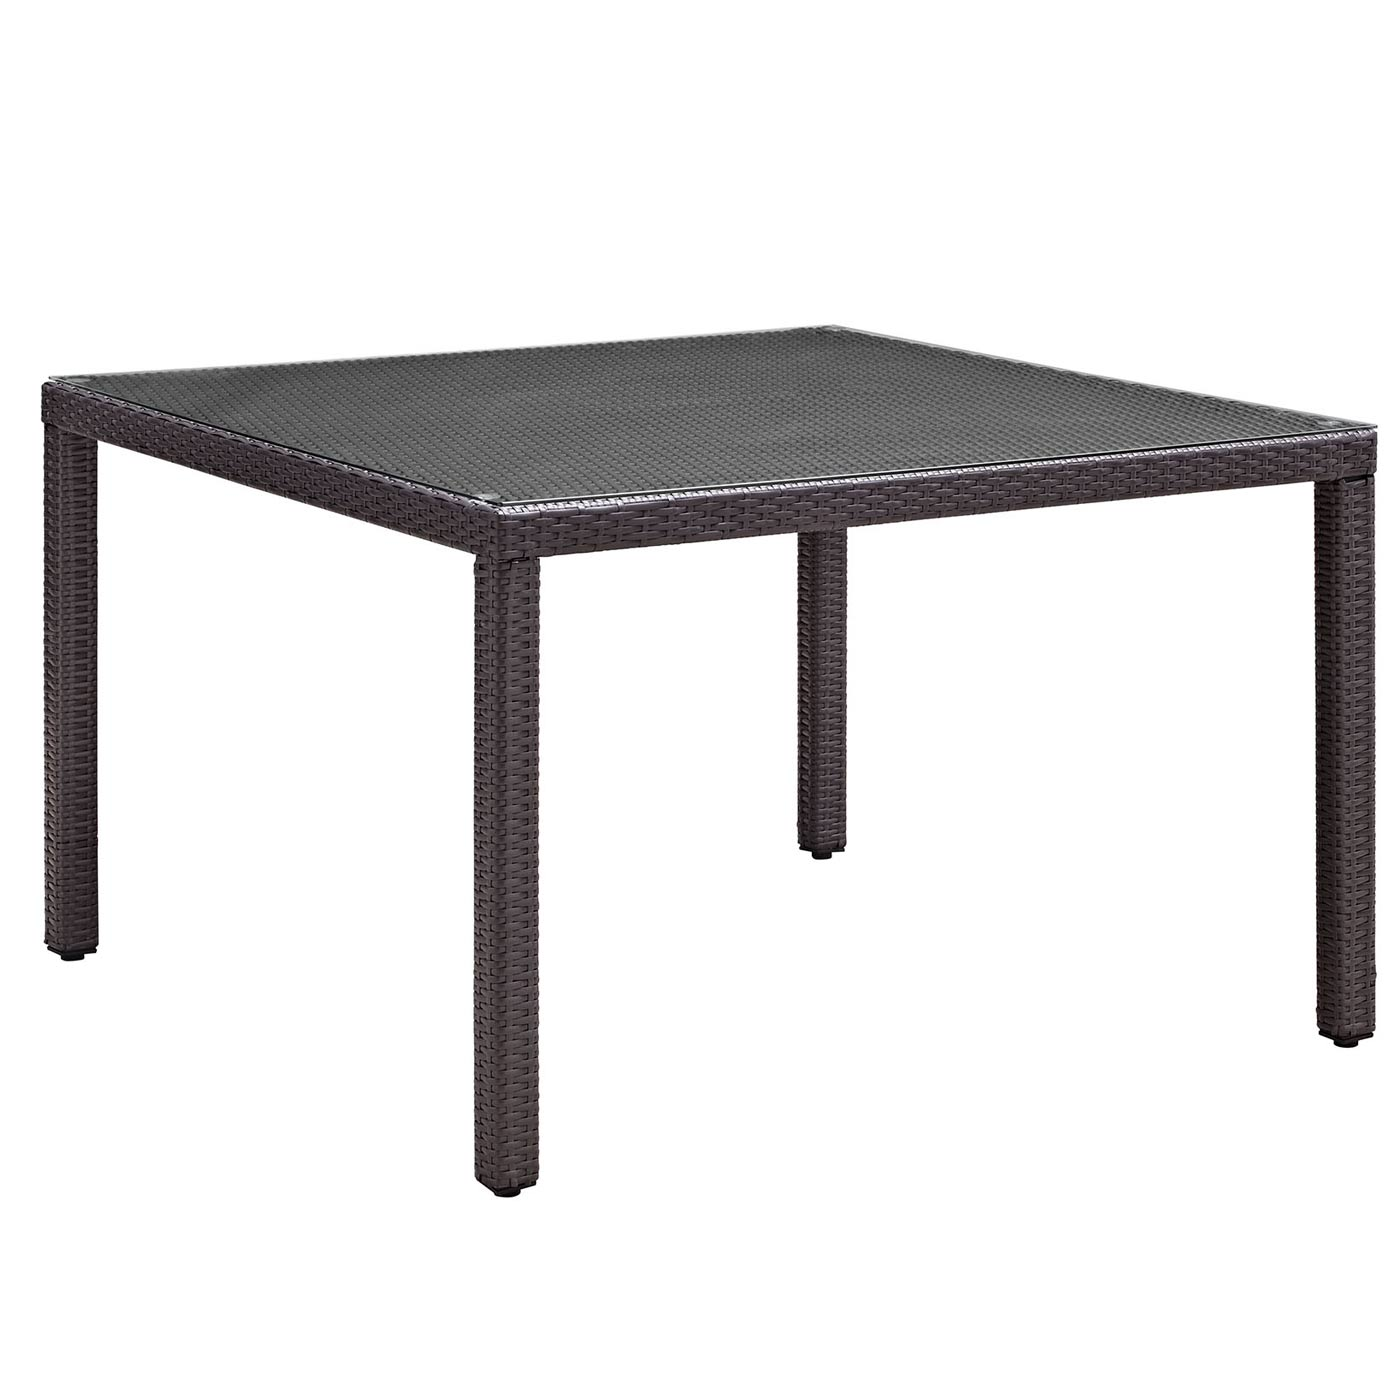 Modway Convene 47 Square Outdoor Patio Glass Top Dining